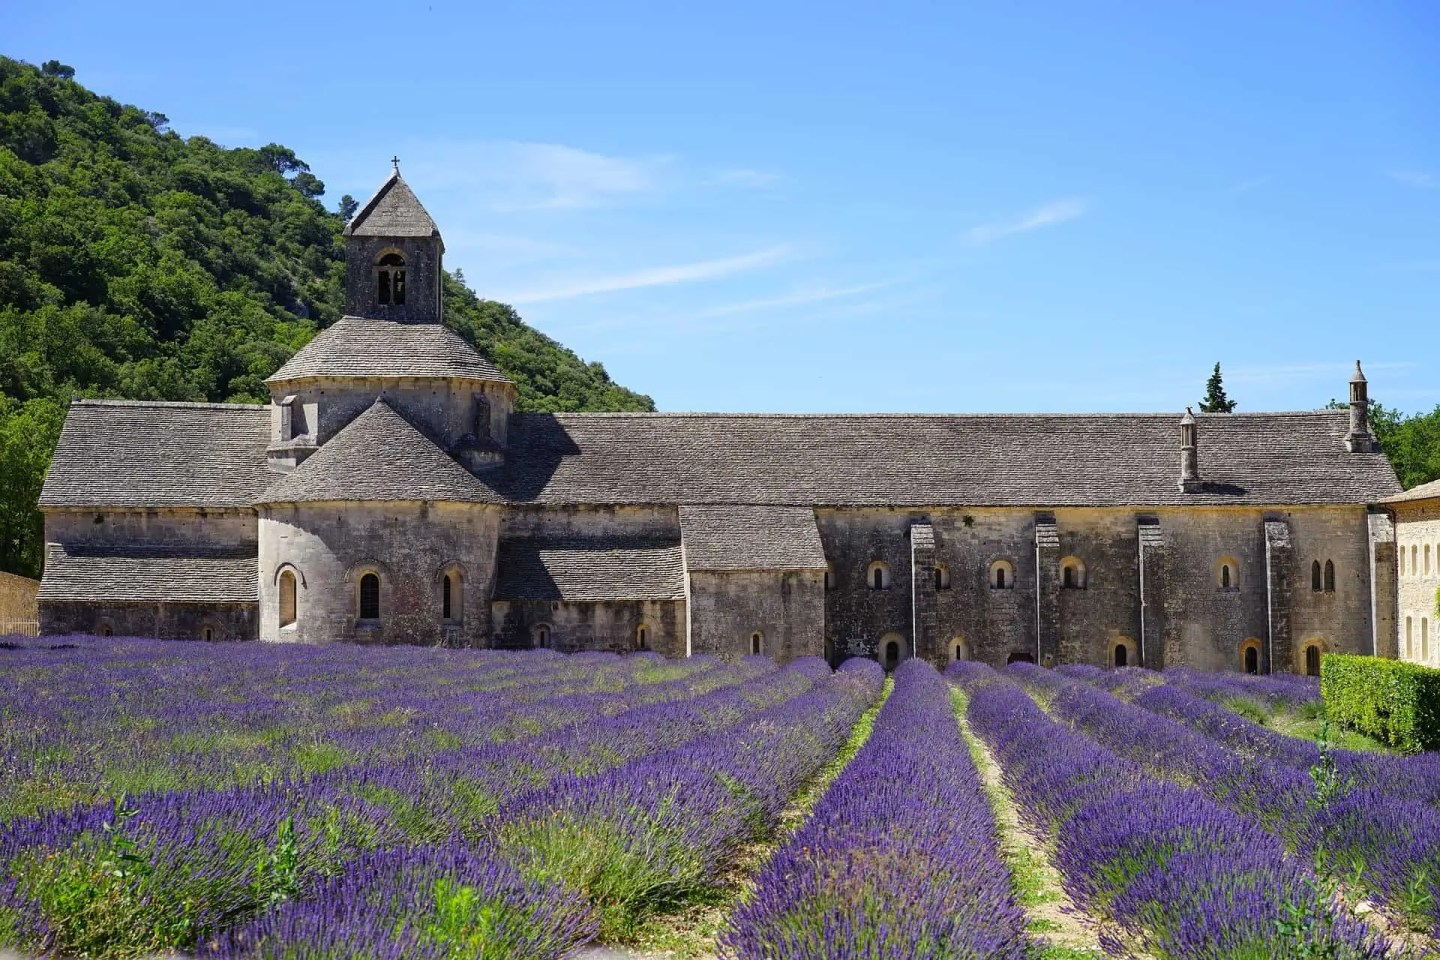 lavender fields in france, lavender fields in provence, lavender fields south of france, lavender fields valensole, valensole plateau